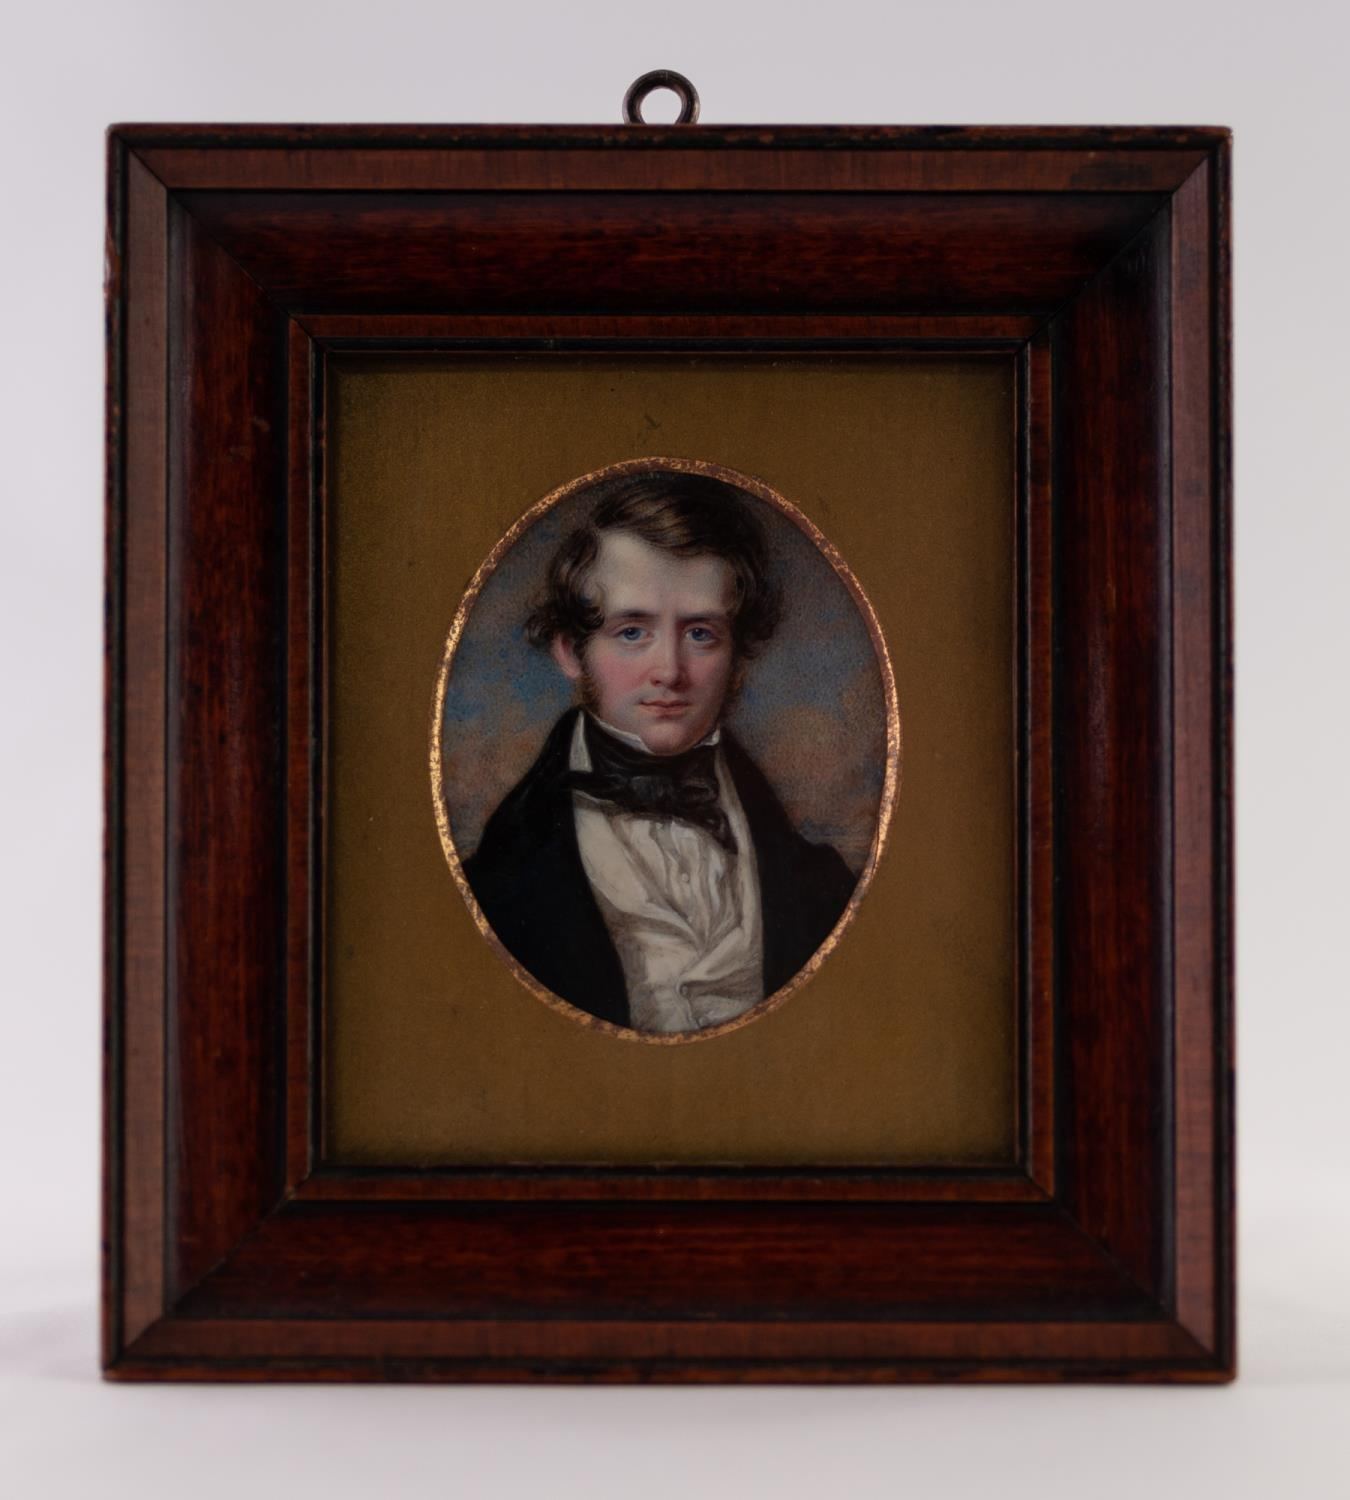 Lot 7 - T. WHEELER, A GOOD OVAL PORTRAIT MINIATURE ON IVORY OF A YOUNG GENTLEMAN, inscribed verso 'Painted